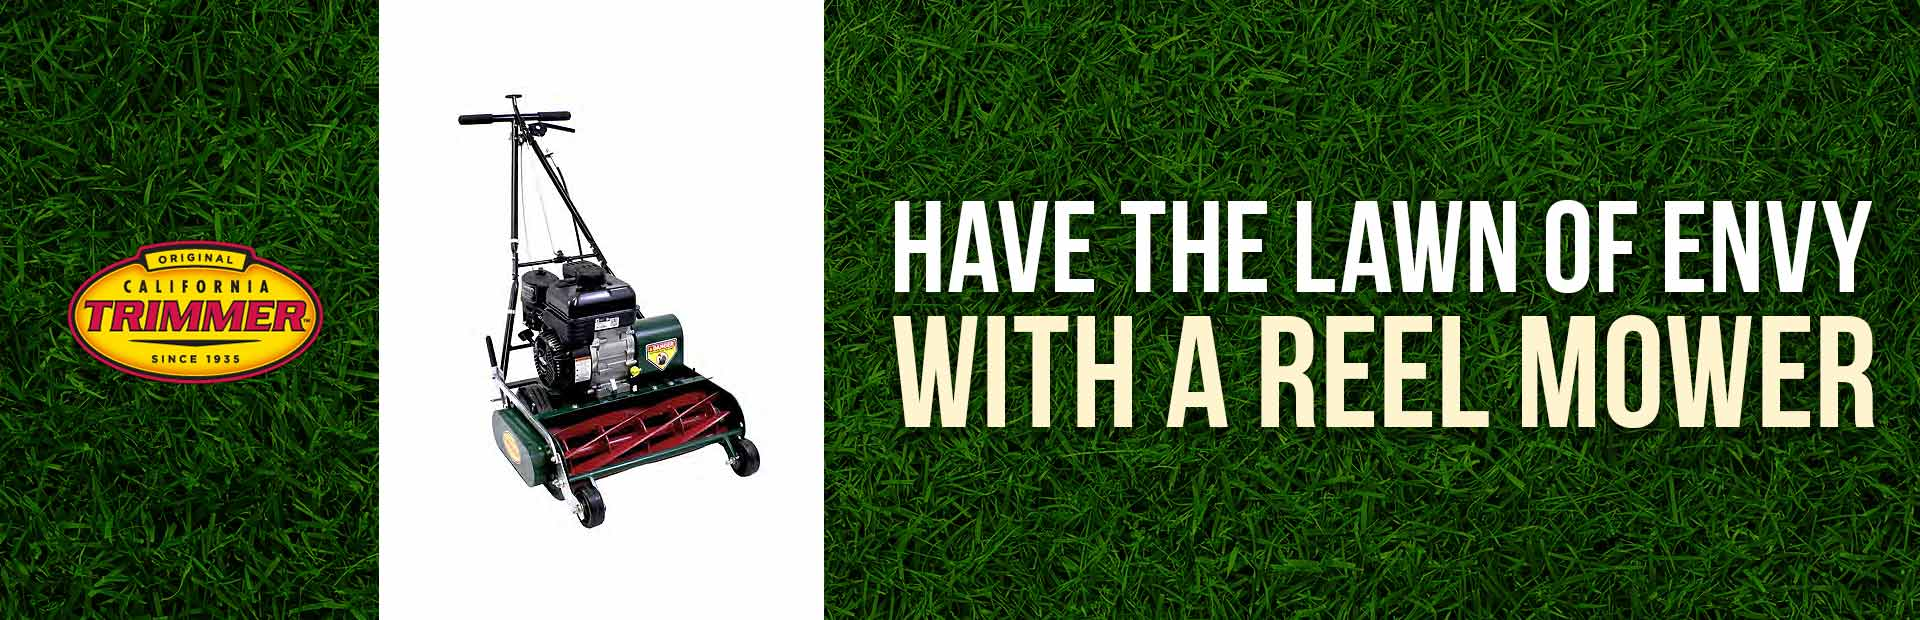 Have the lawn of envy with a California Trimmer reel mower!